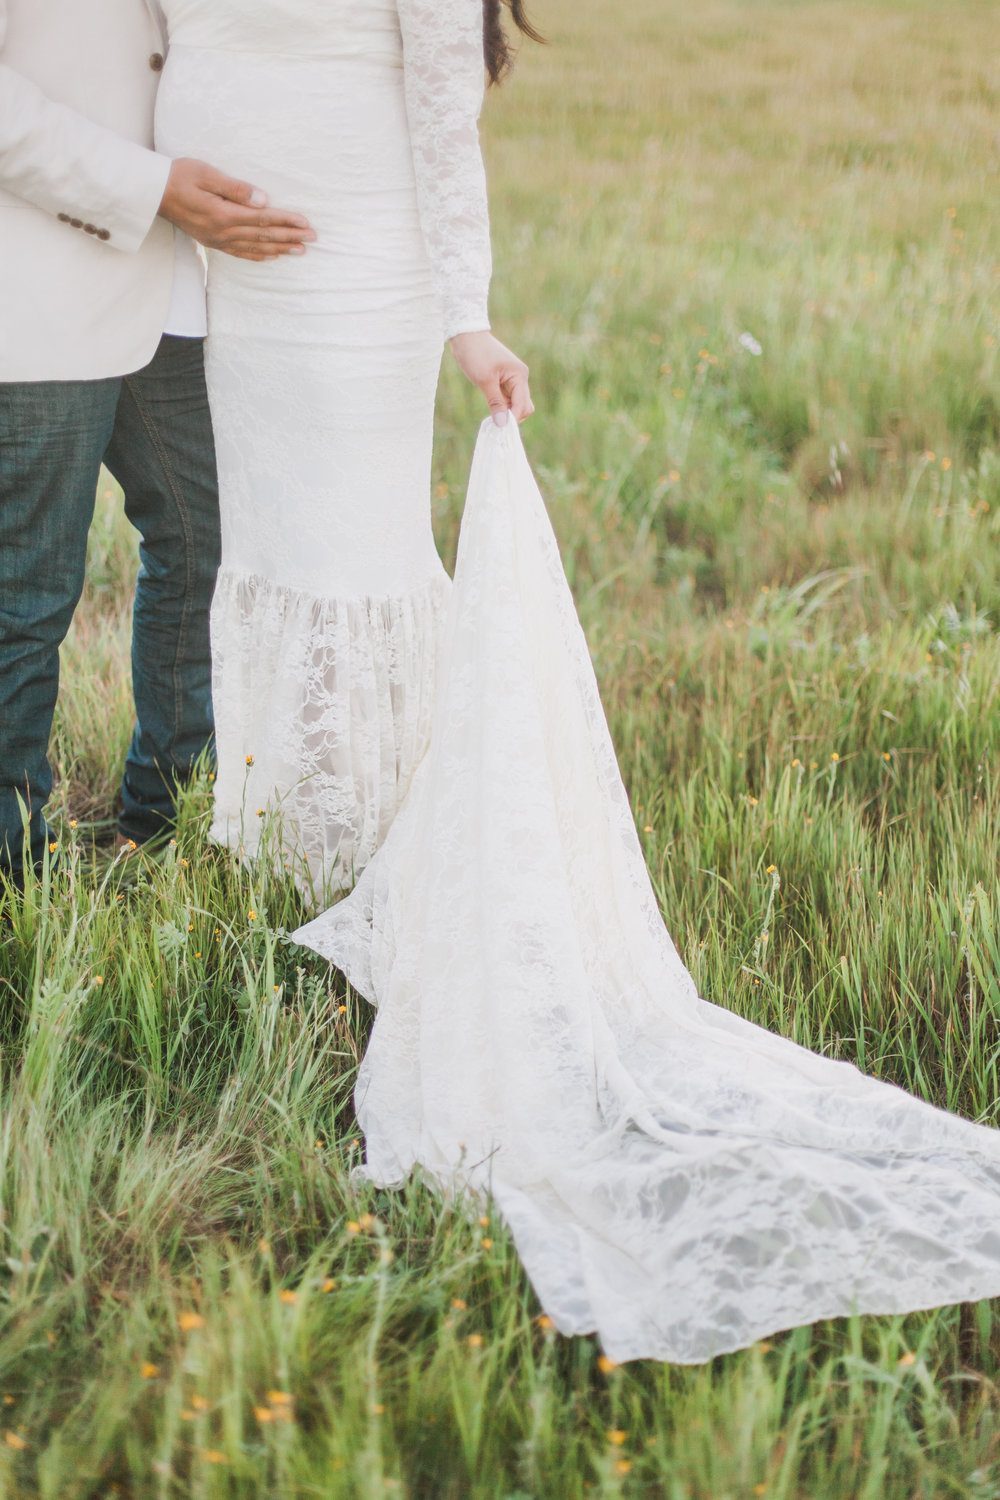 Woman holding her white vintage dress in a grass field during maternity session in San Jose, California.